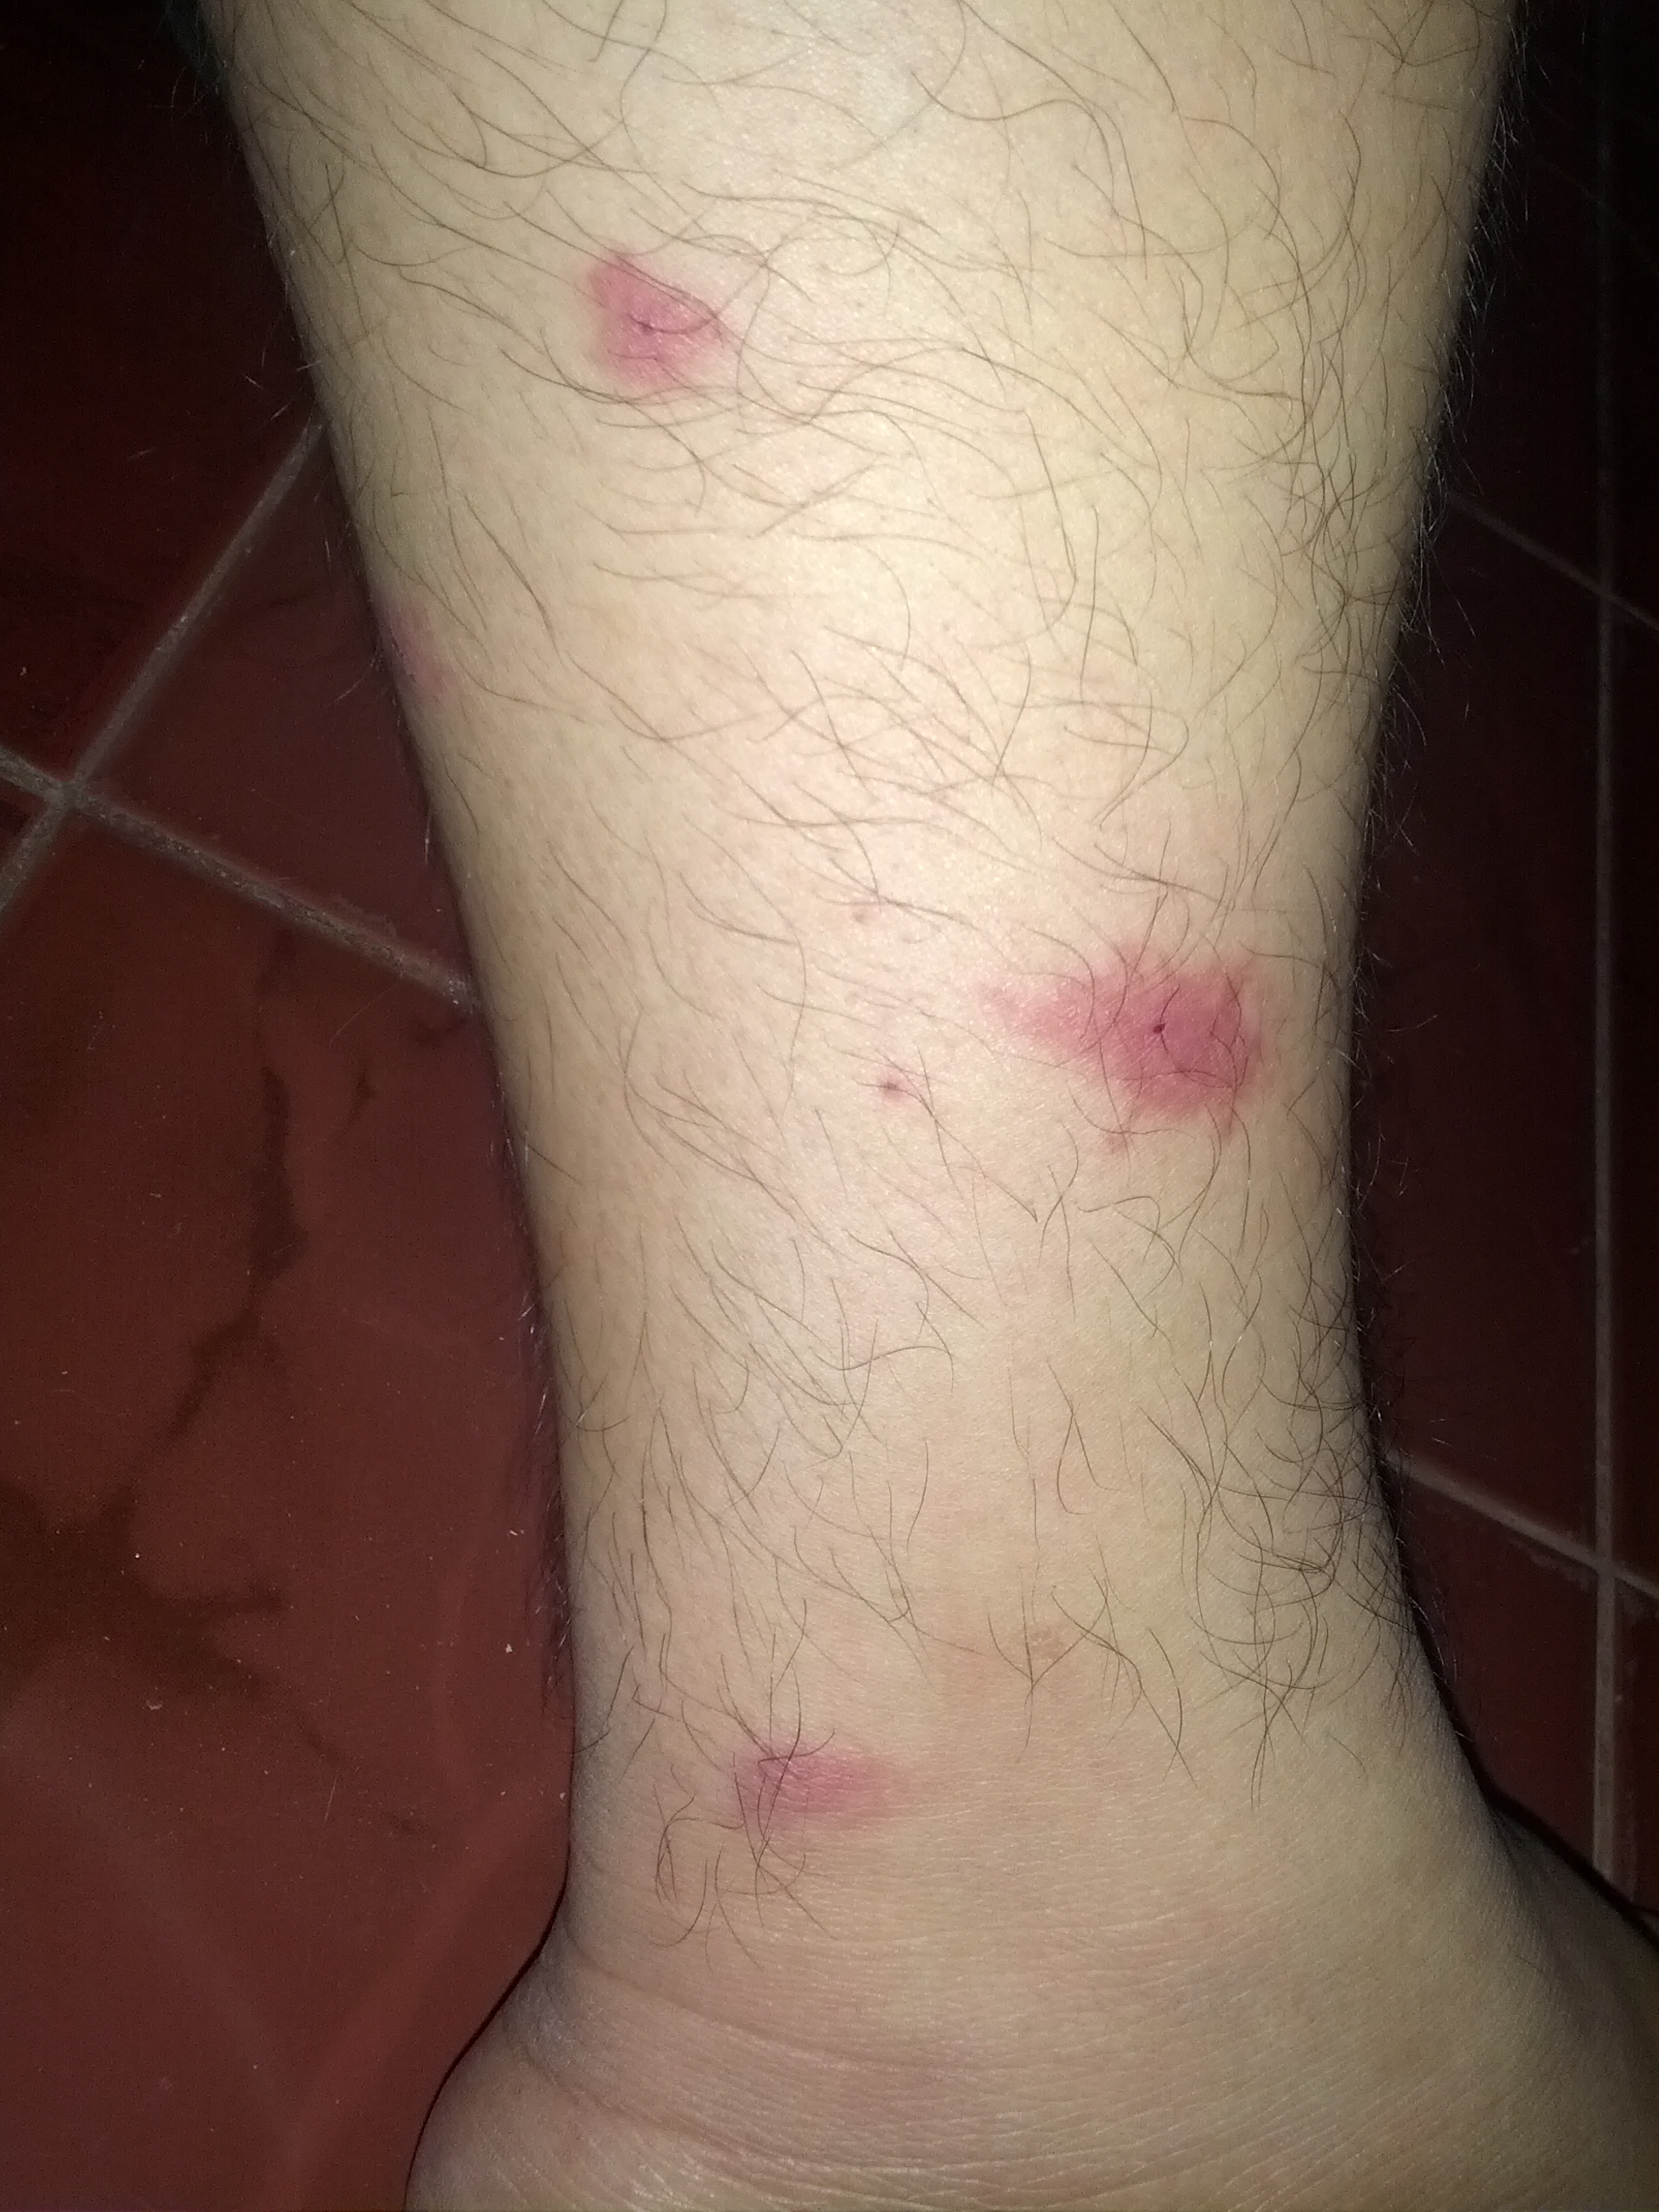 Insect bites on legs - photo#3